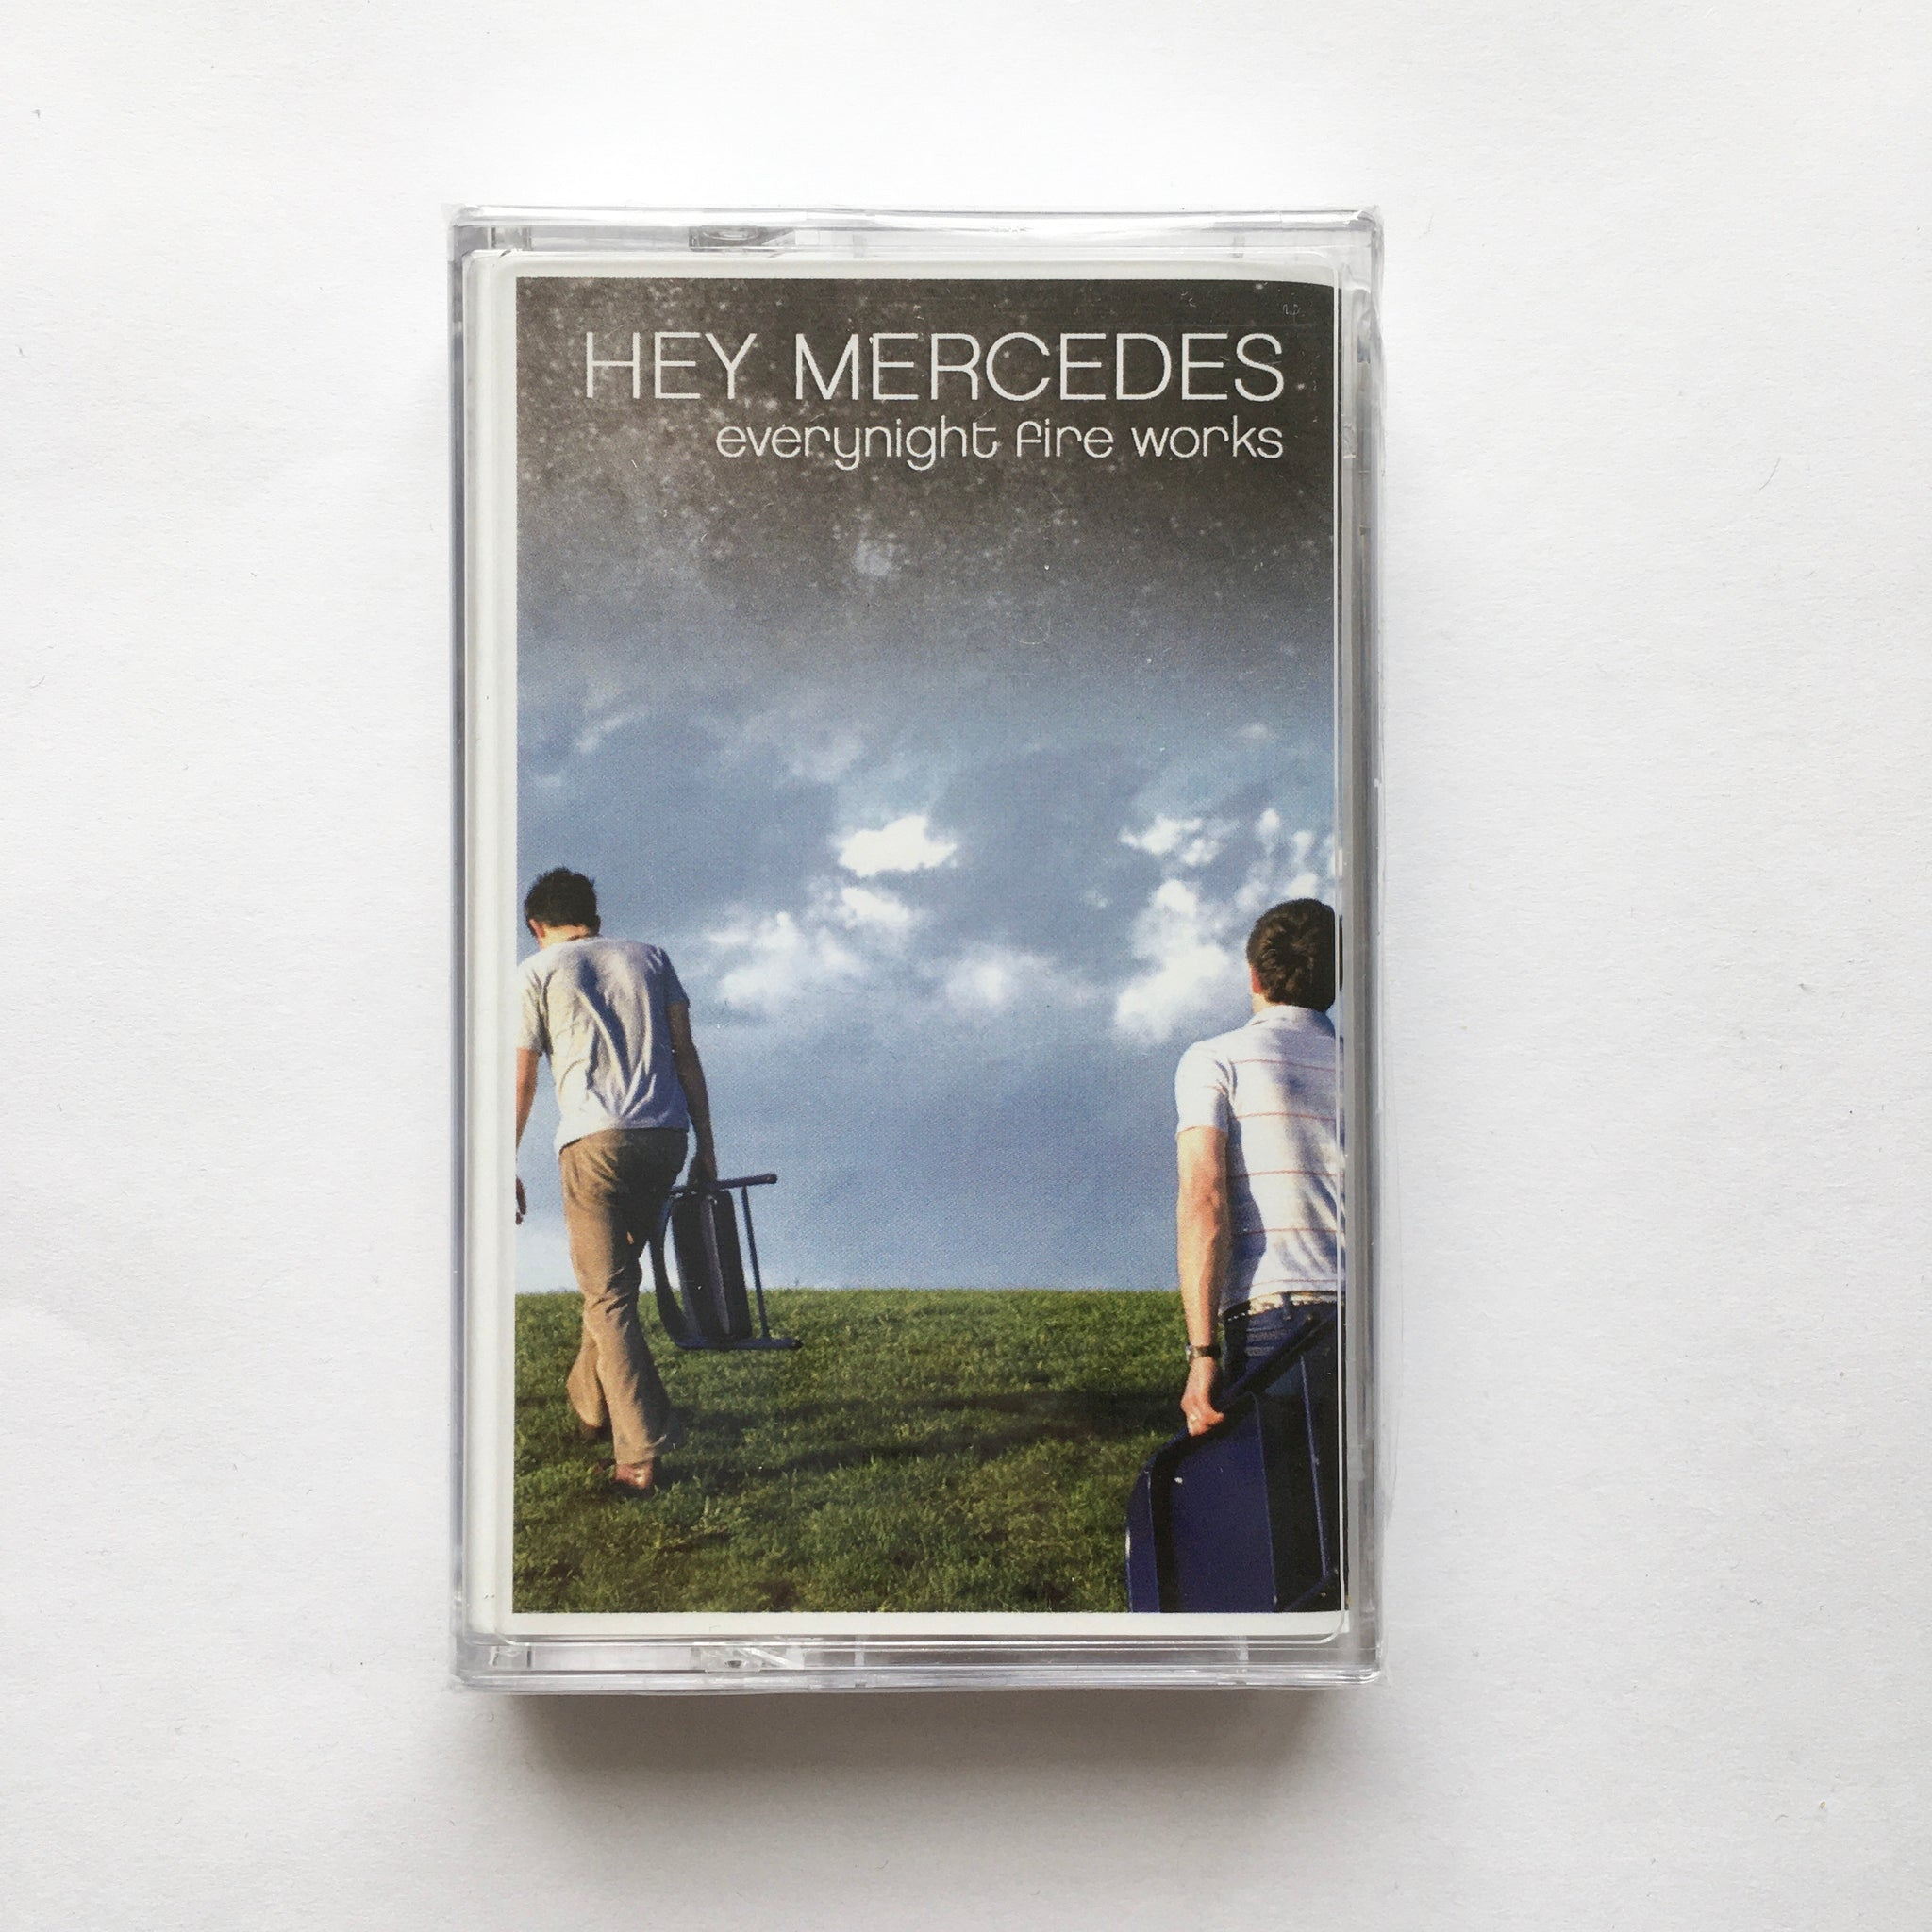 Hey Mercedes - Everynight Fire Works TAPE